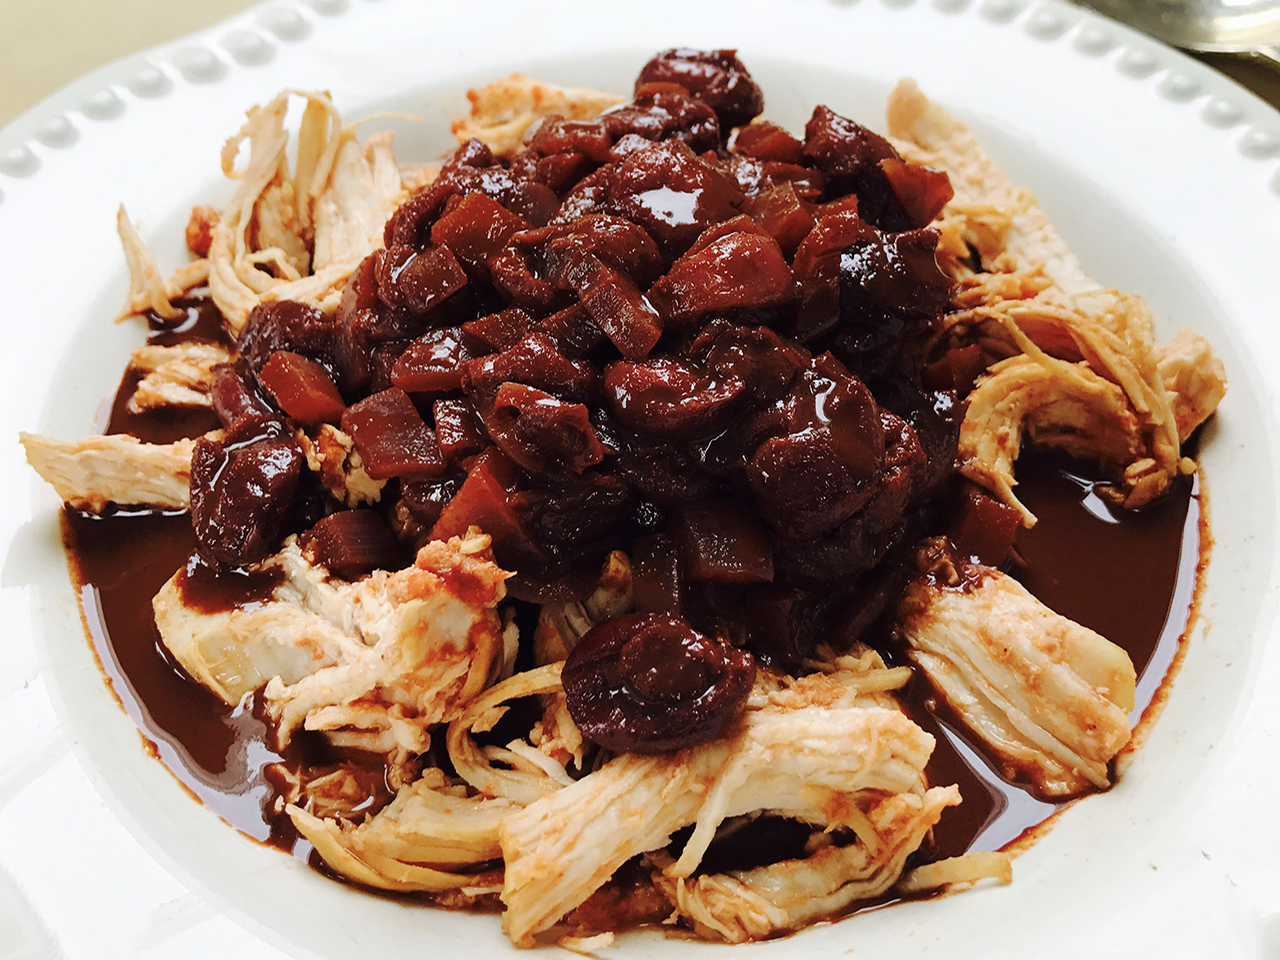 Pressure-cooker Pulled Chicken With Cherry Chocolate Sauce